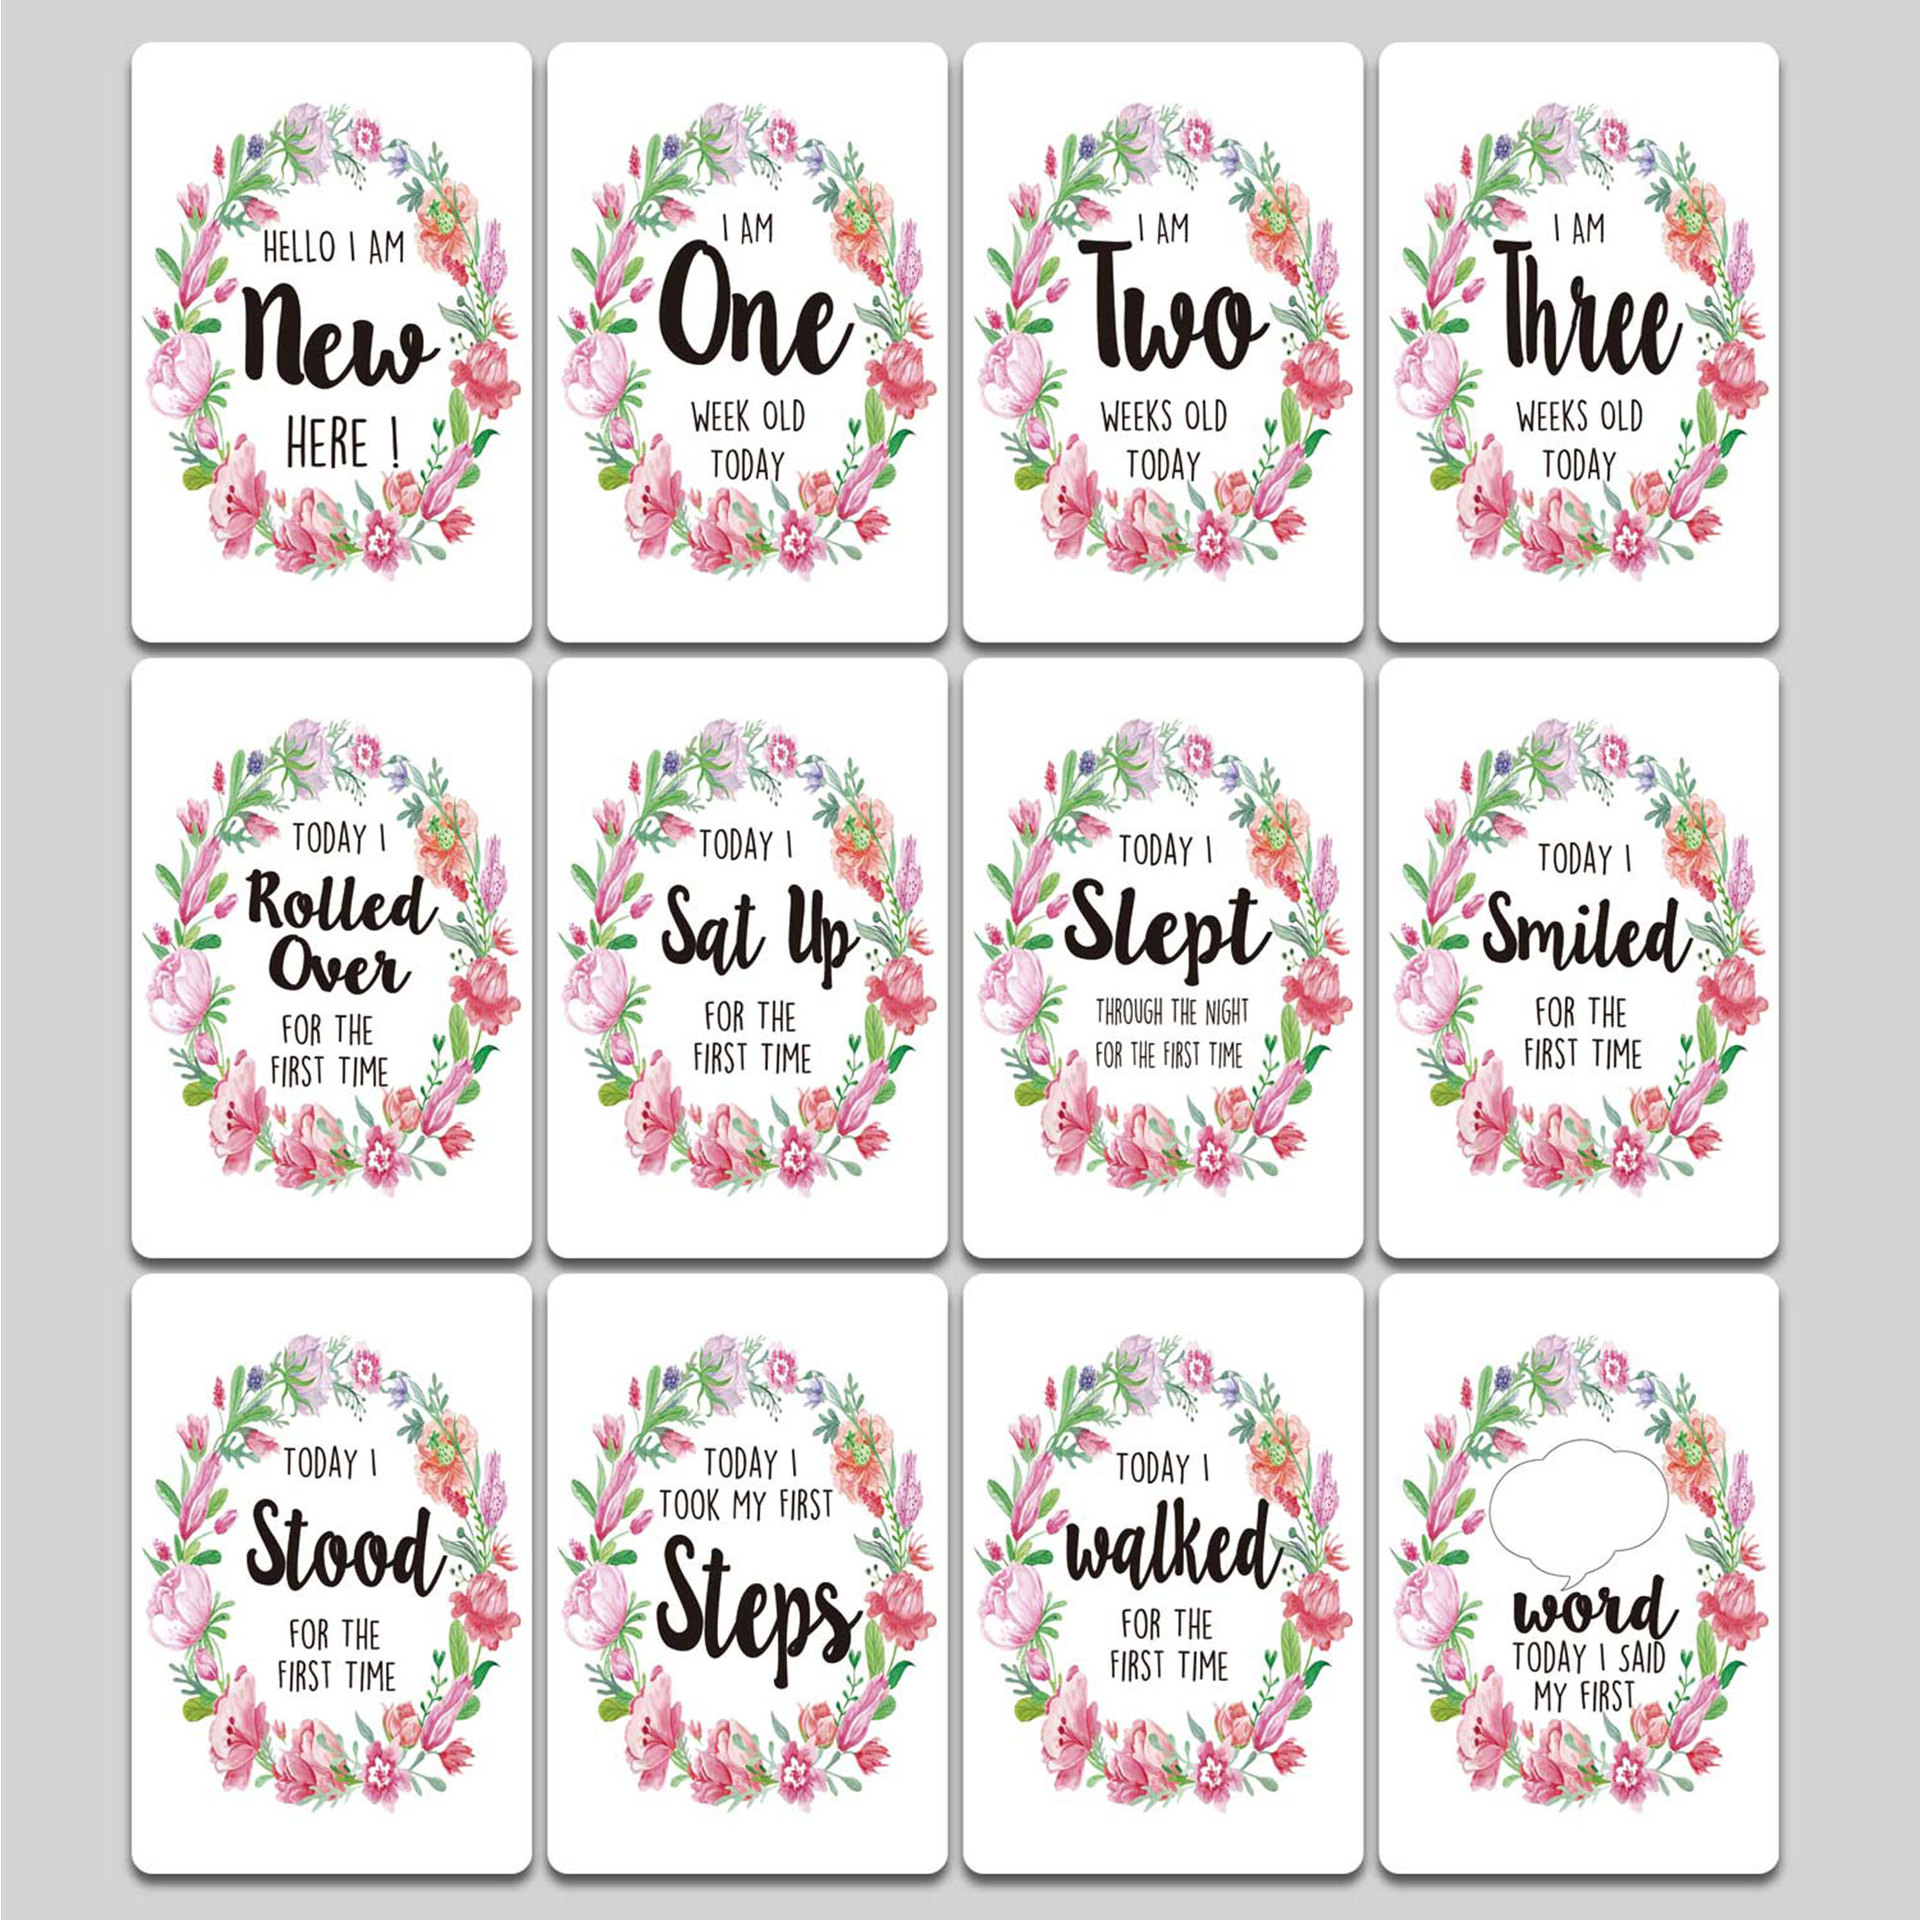 New 12 Sheet Milestone Photo Sharing Cards Gift Set Baby Age Cards - Baby Milestone Cards, Baby Photo Cards - Newborn Photo